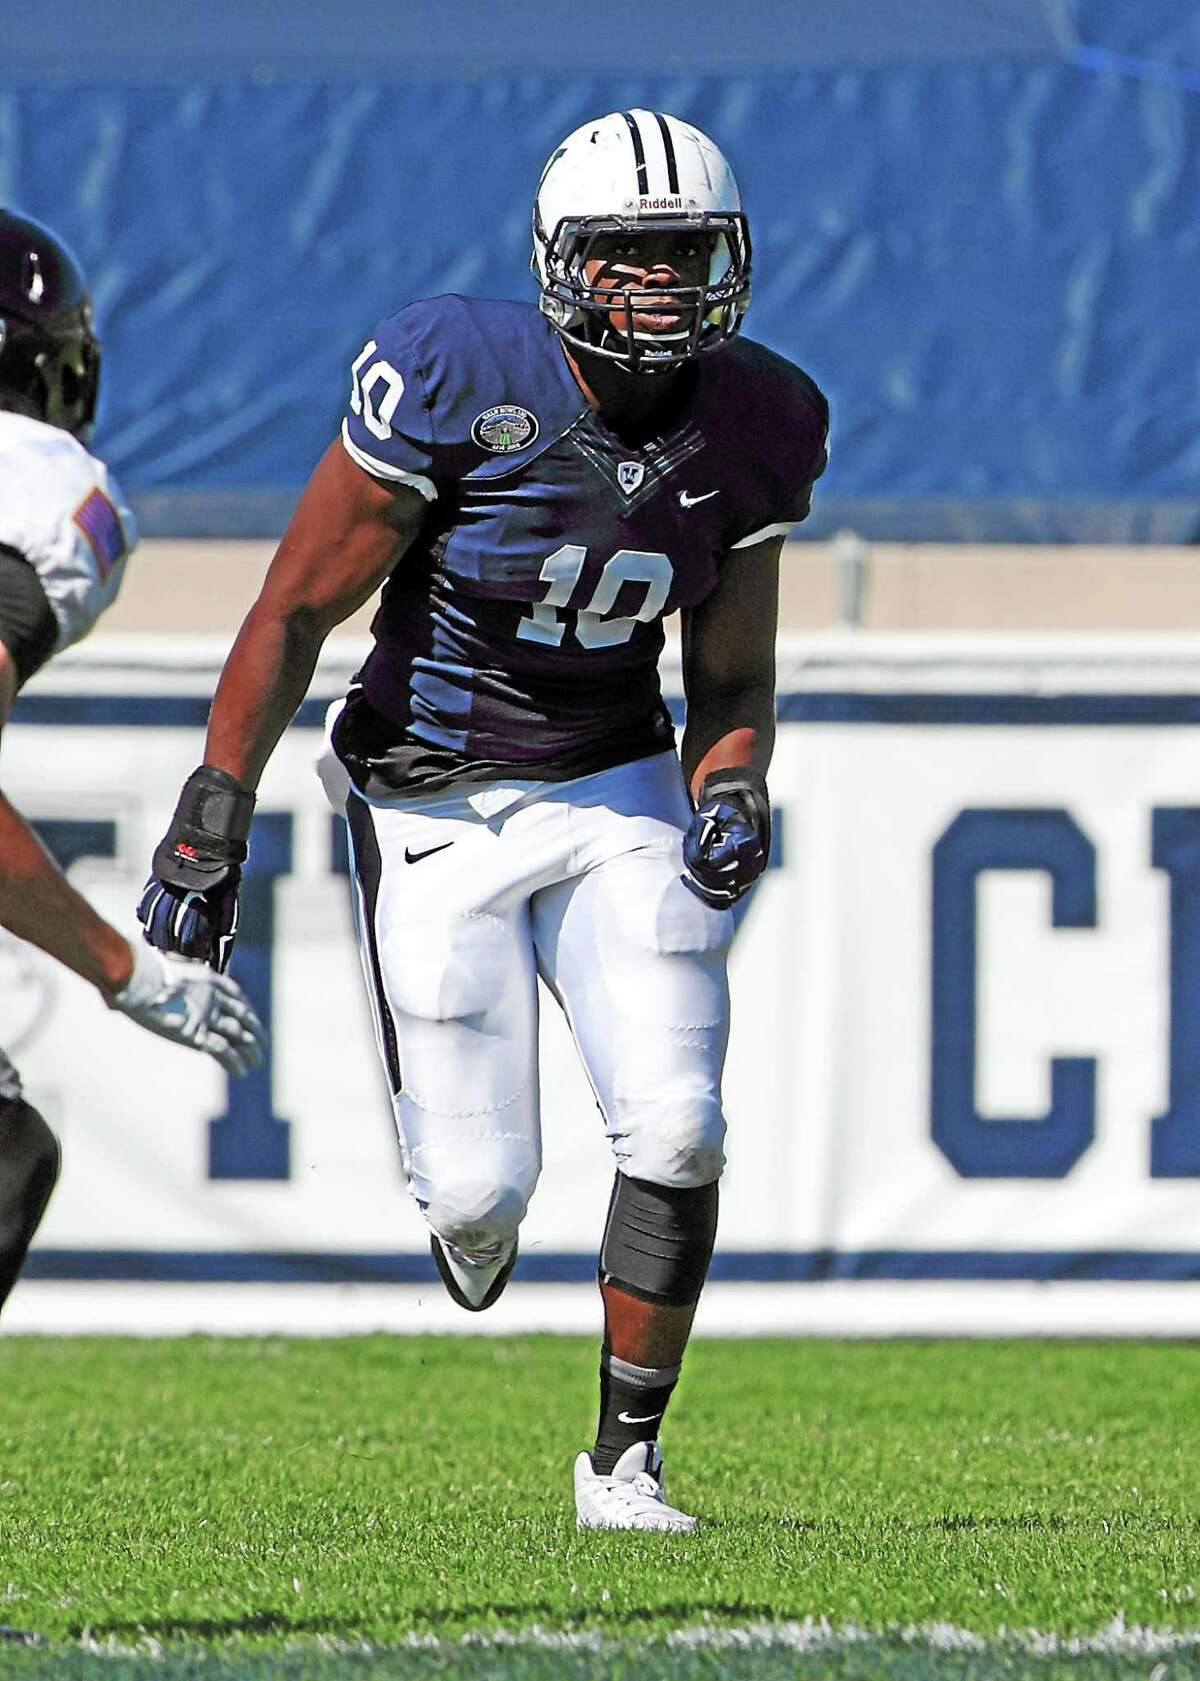 Victor Egu is expected to a major factor for an improved Yale defense next season.